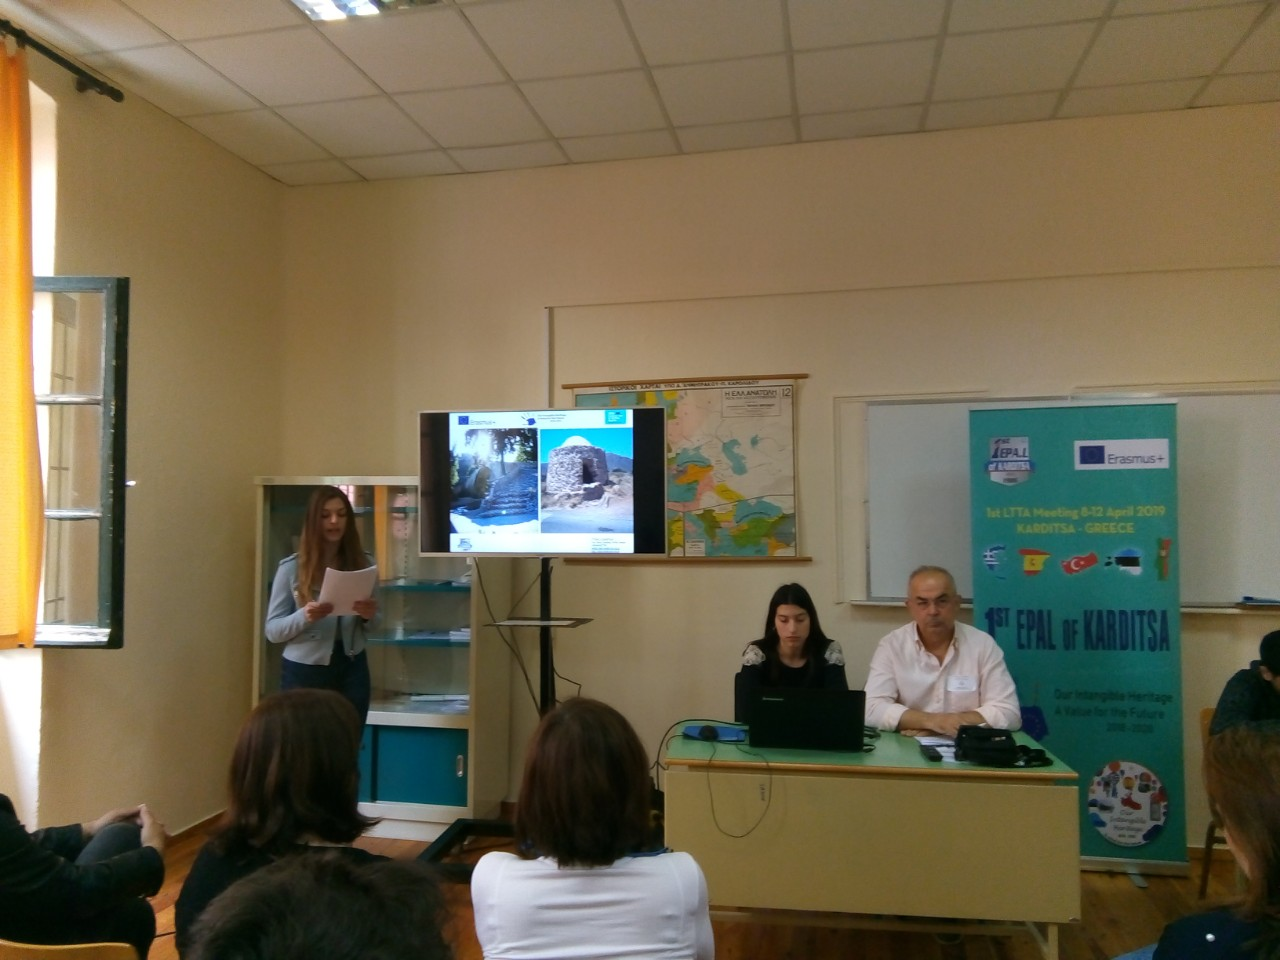 Dissemination of the Project at the 2nd Panhellenic Student Conference